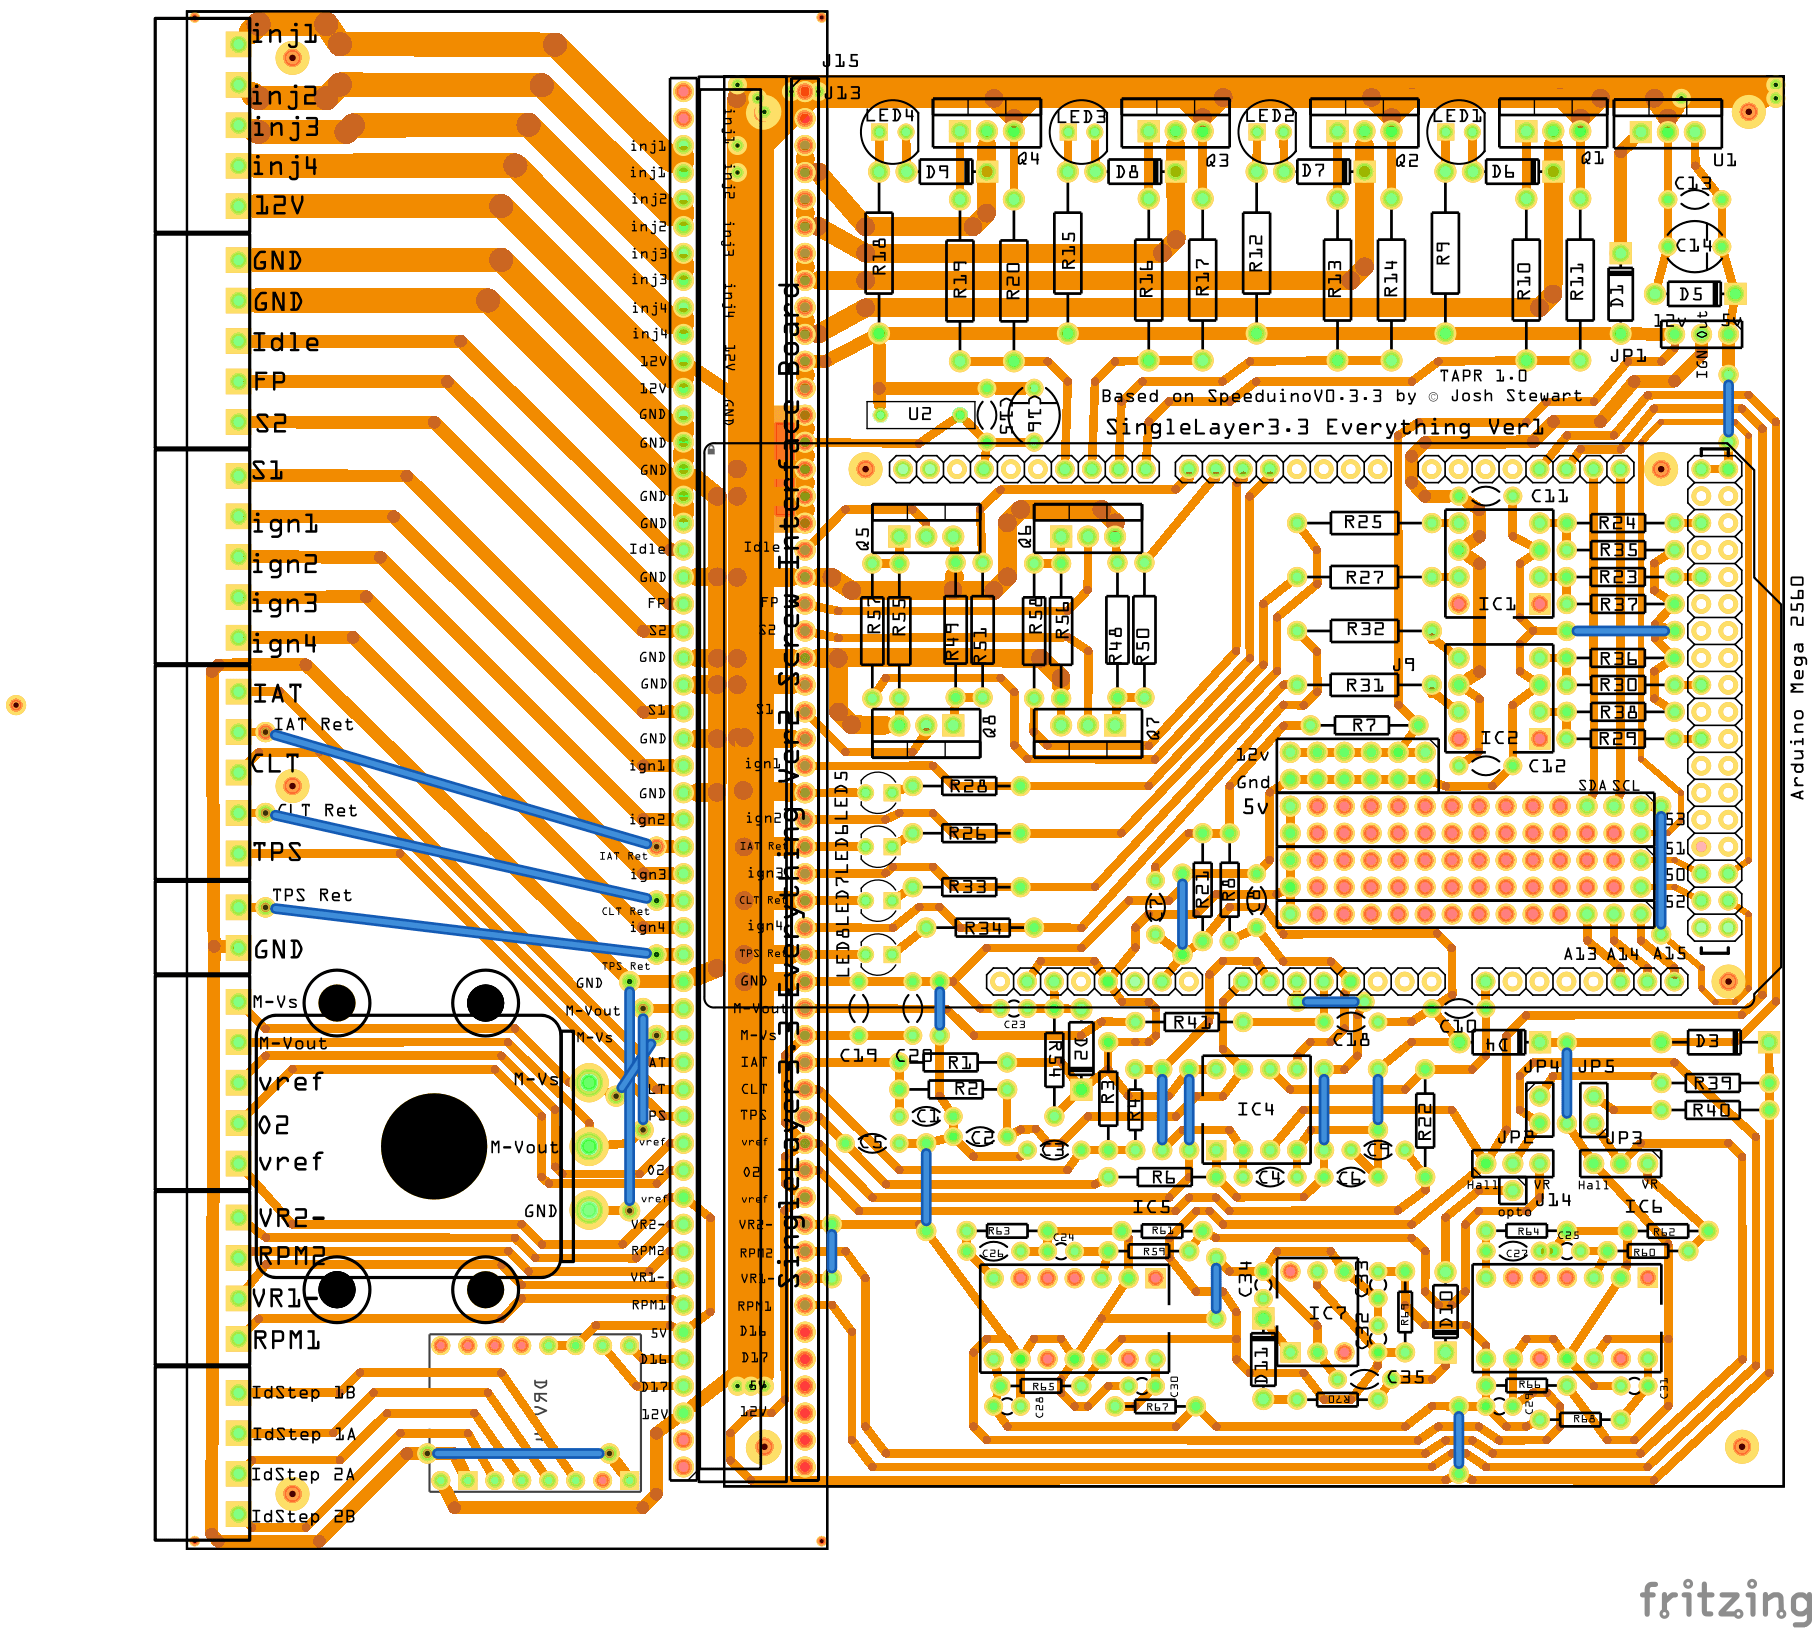 Creating A Pcb In Everything Friends Dont Let Use Fritzing For Minute Say You Have To Create Circuit Board Of Some Sort Just Need Spend More Hours On It I Made This Which Has Parts Created So Can Be Done